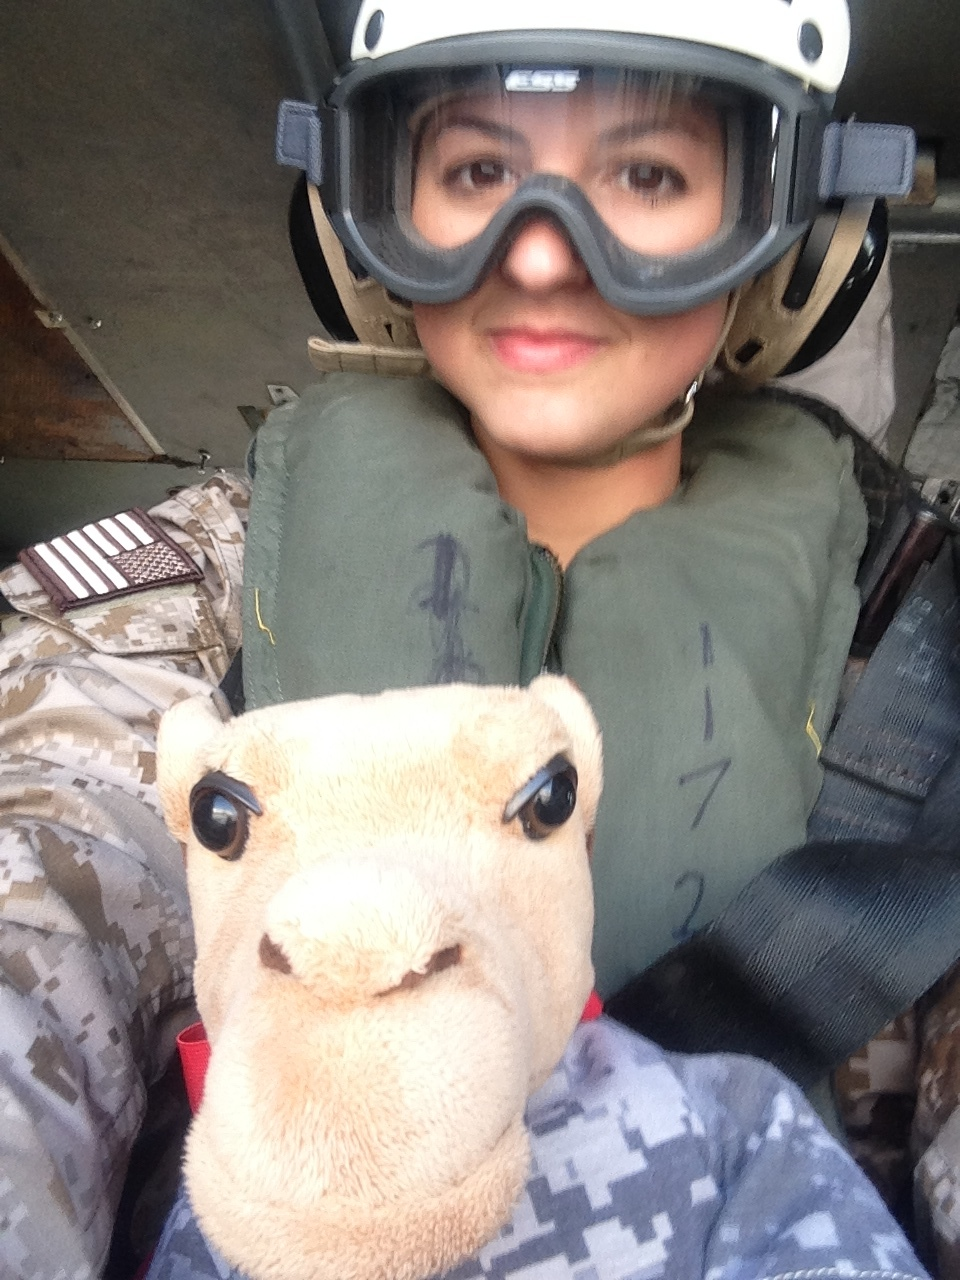 The author takes her traveling companion, Humps the Camel, for a helicopter ride, while deployed on Christmas Eve 2013. Courtesy Andrea N. Goldstein